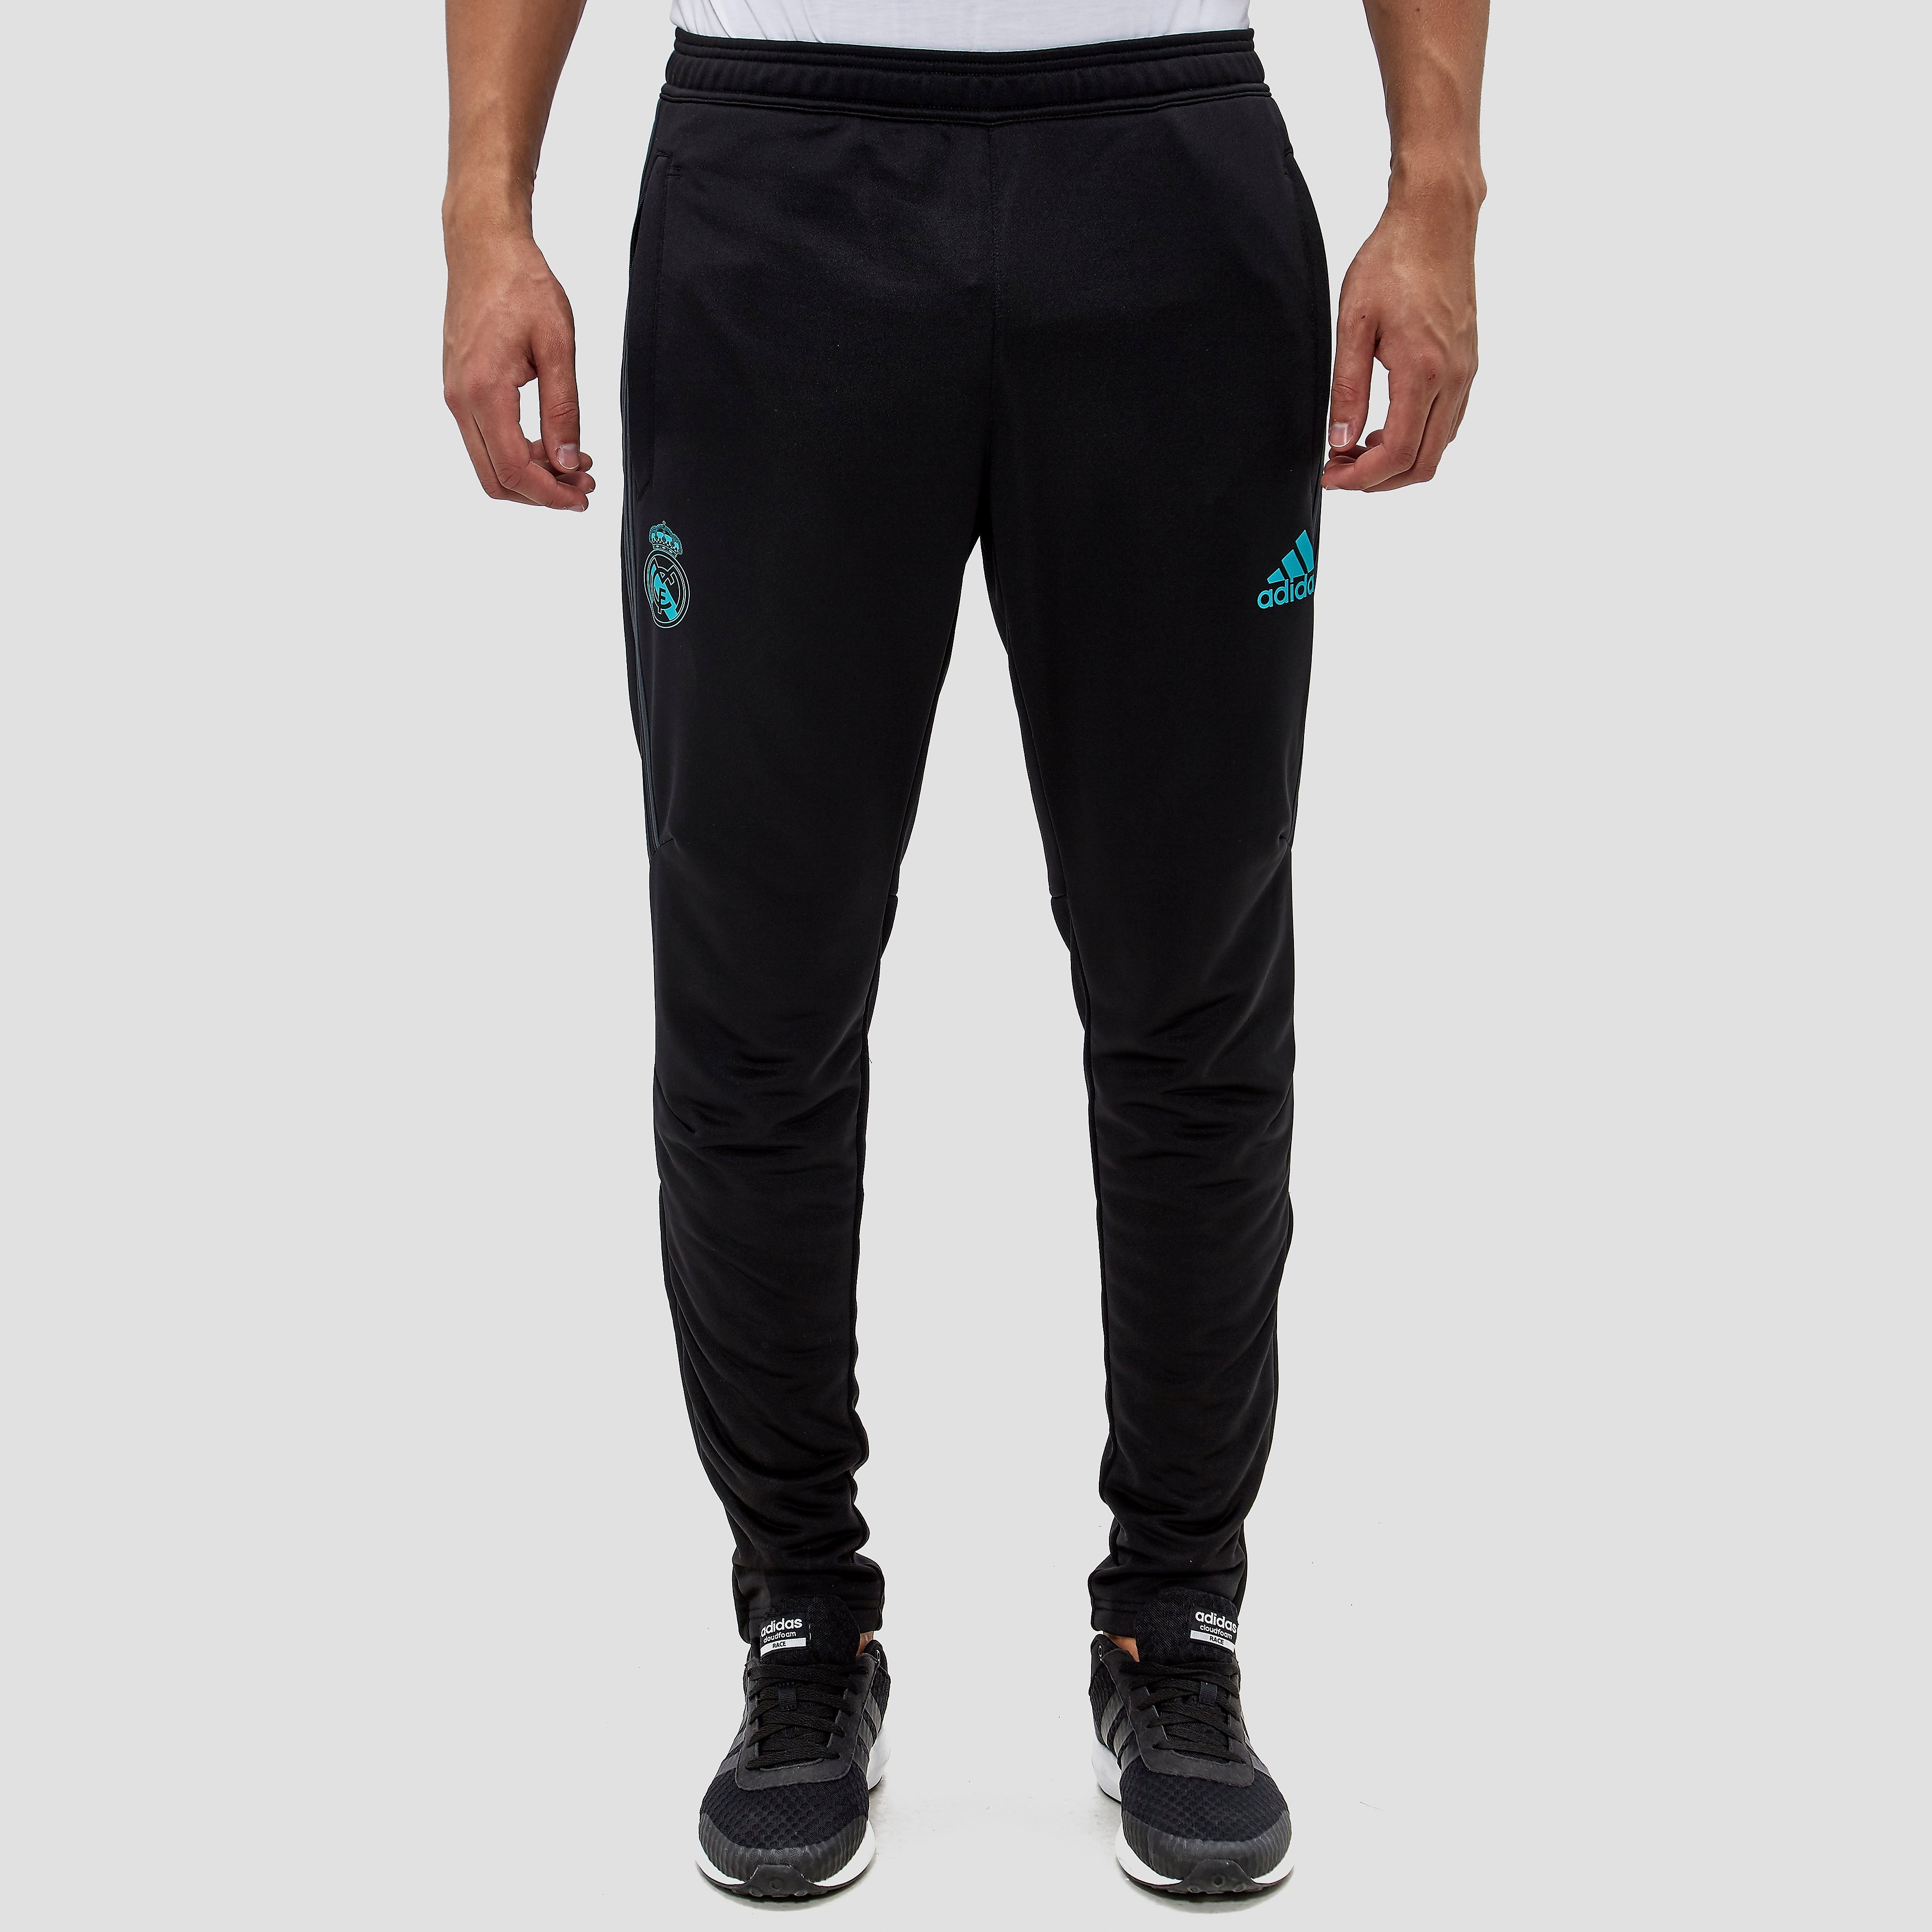 ADIDAS REAL MADRID TRAININGSBROEK 17/18 ZWART/GROEN HEREN